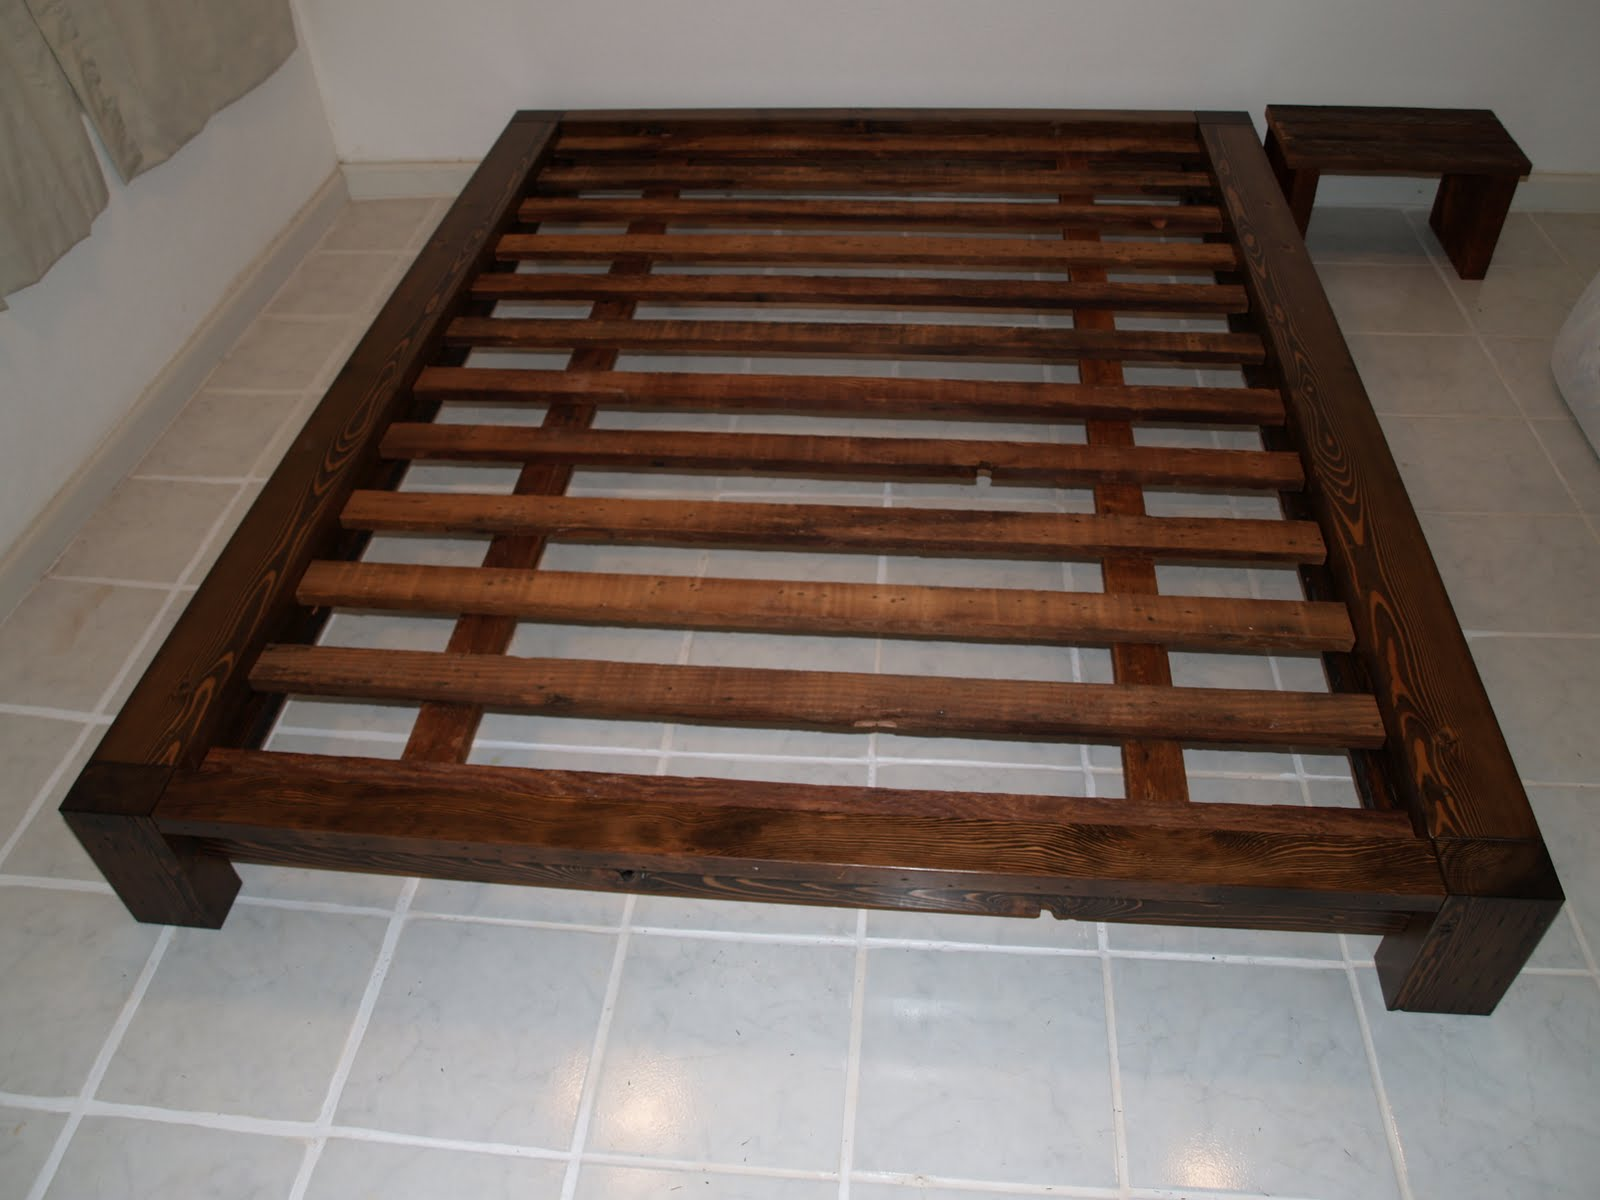 build a king size platform bed frame | Quick Woodworking Projects